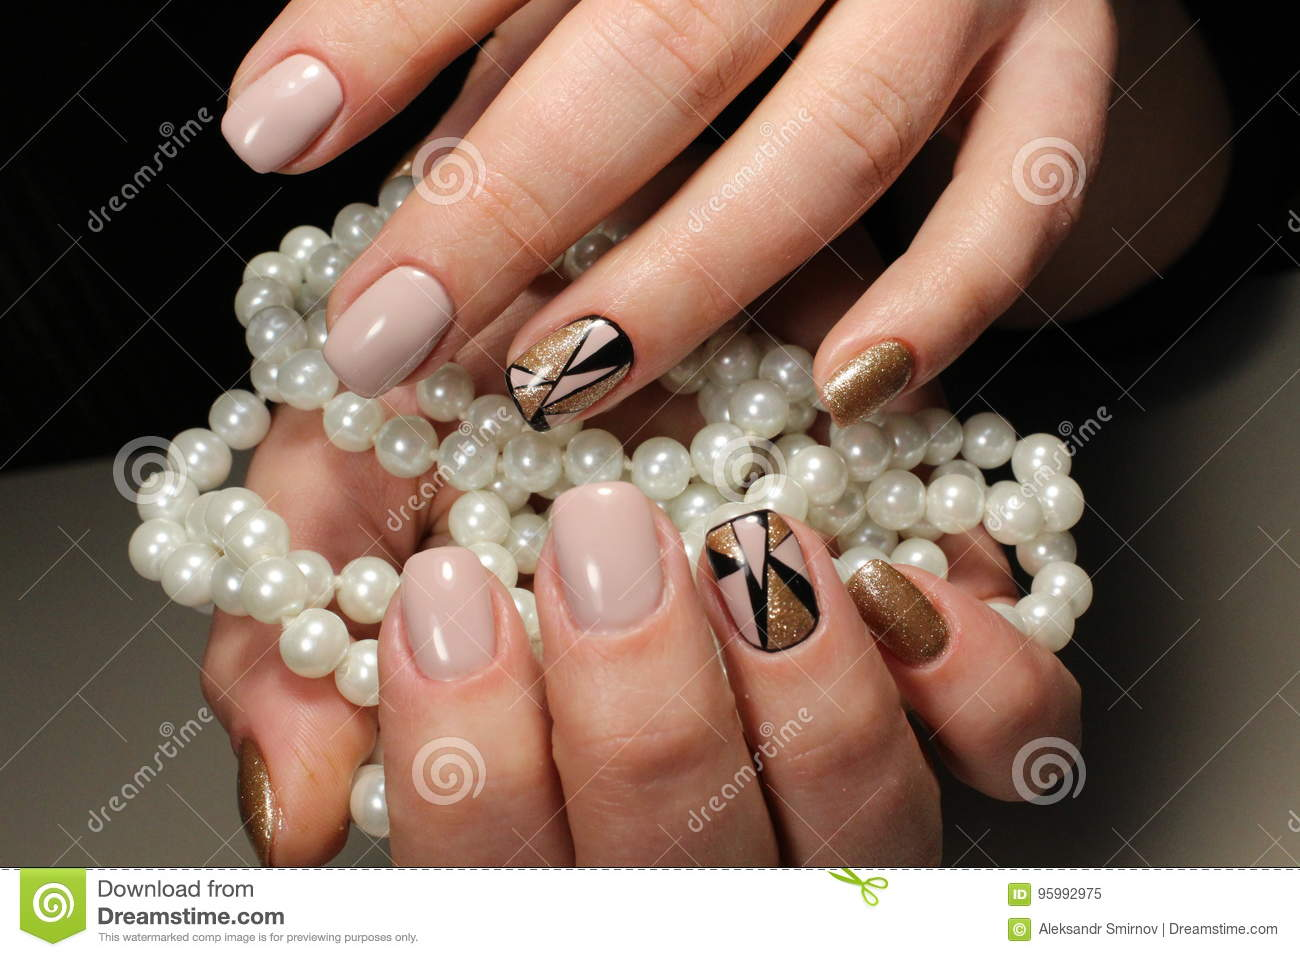 Design Of Youth Manicure With Pearls Stock Image Image Of Manicure